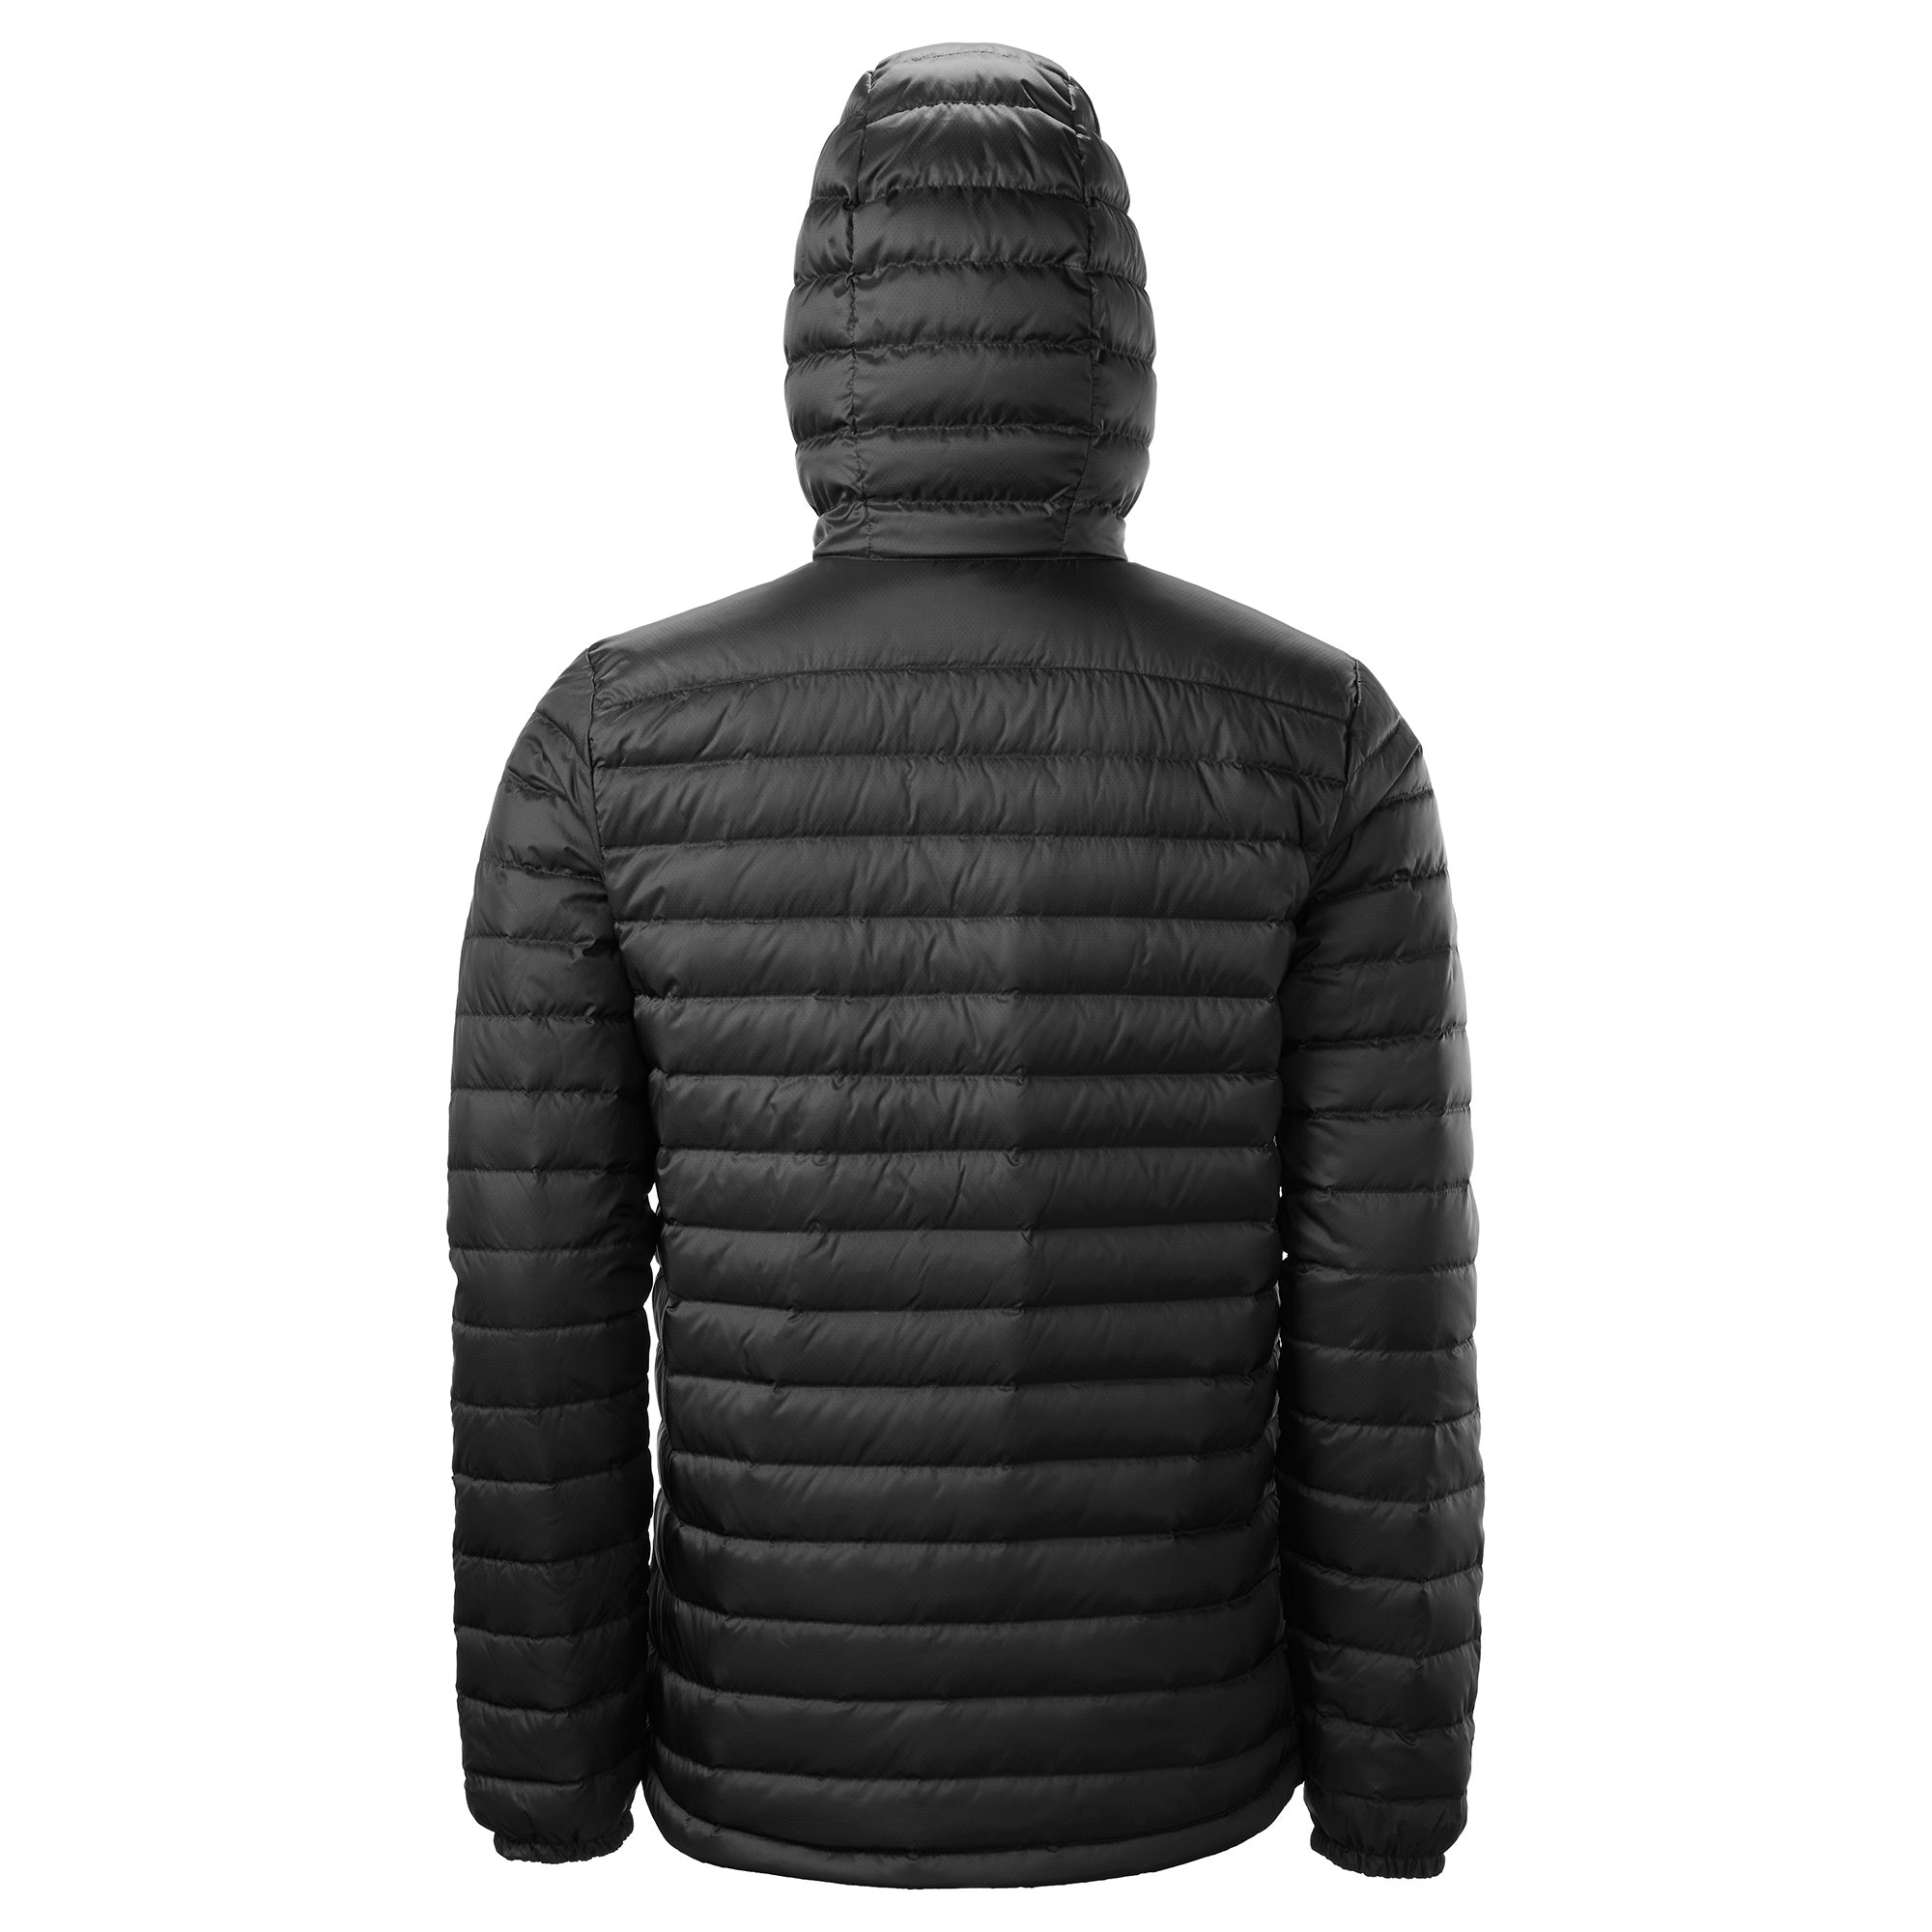 NEW-Kathmandu-Heli-Hooded-Lightweight-Compact-Water-Repellent-Warm-Men-Down thumbnail 7